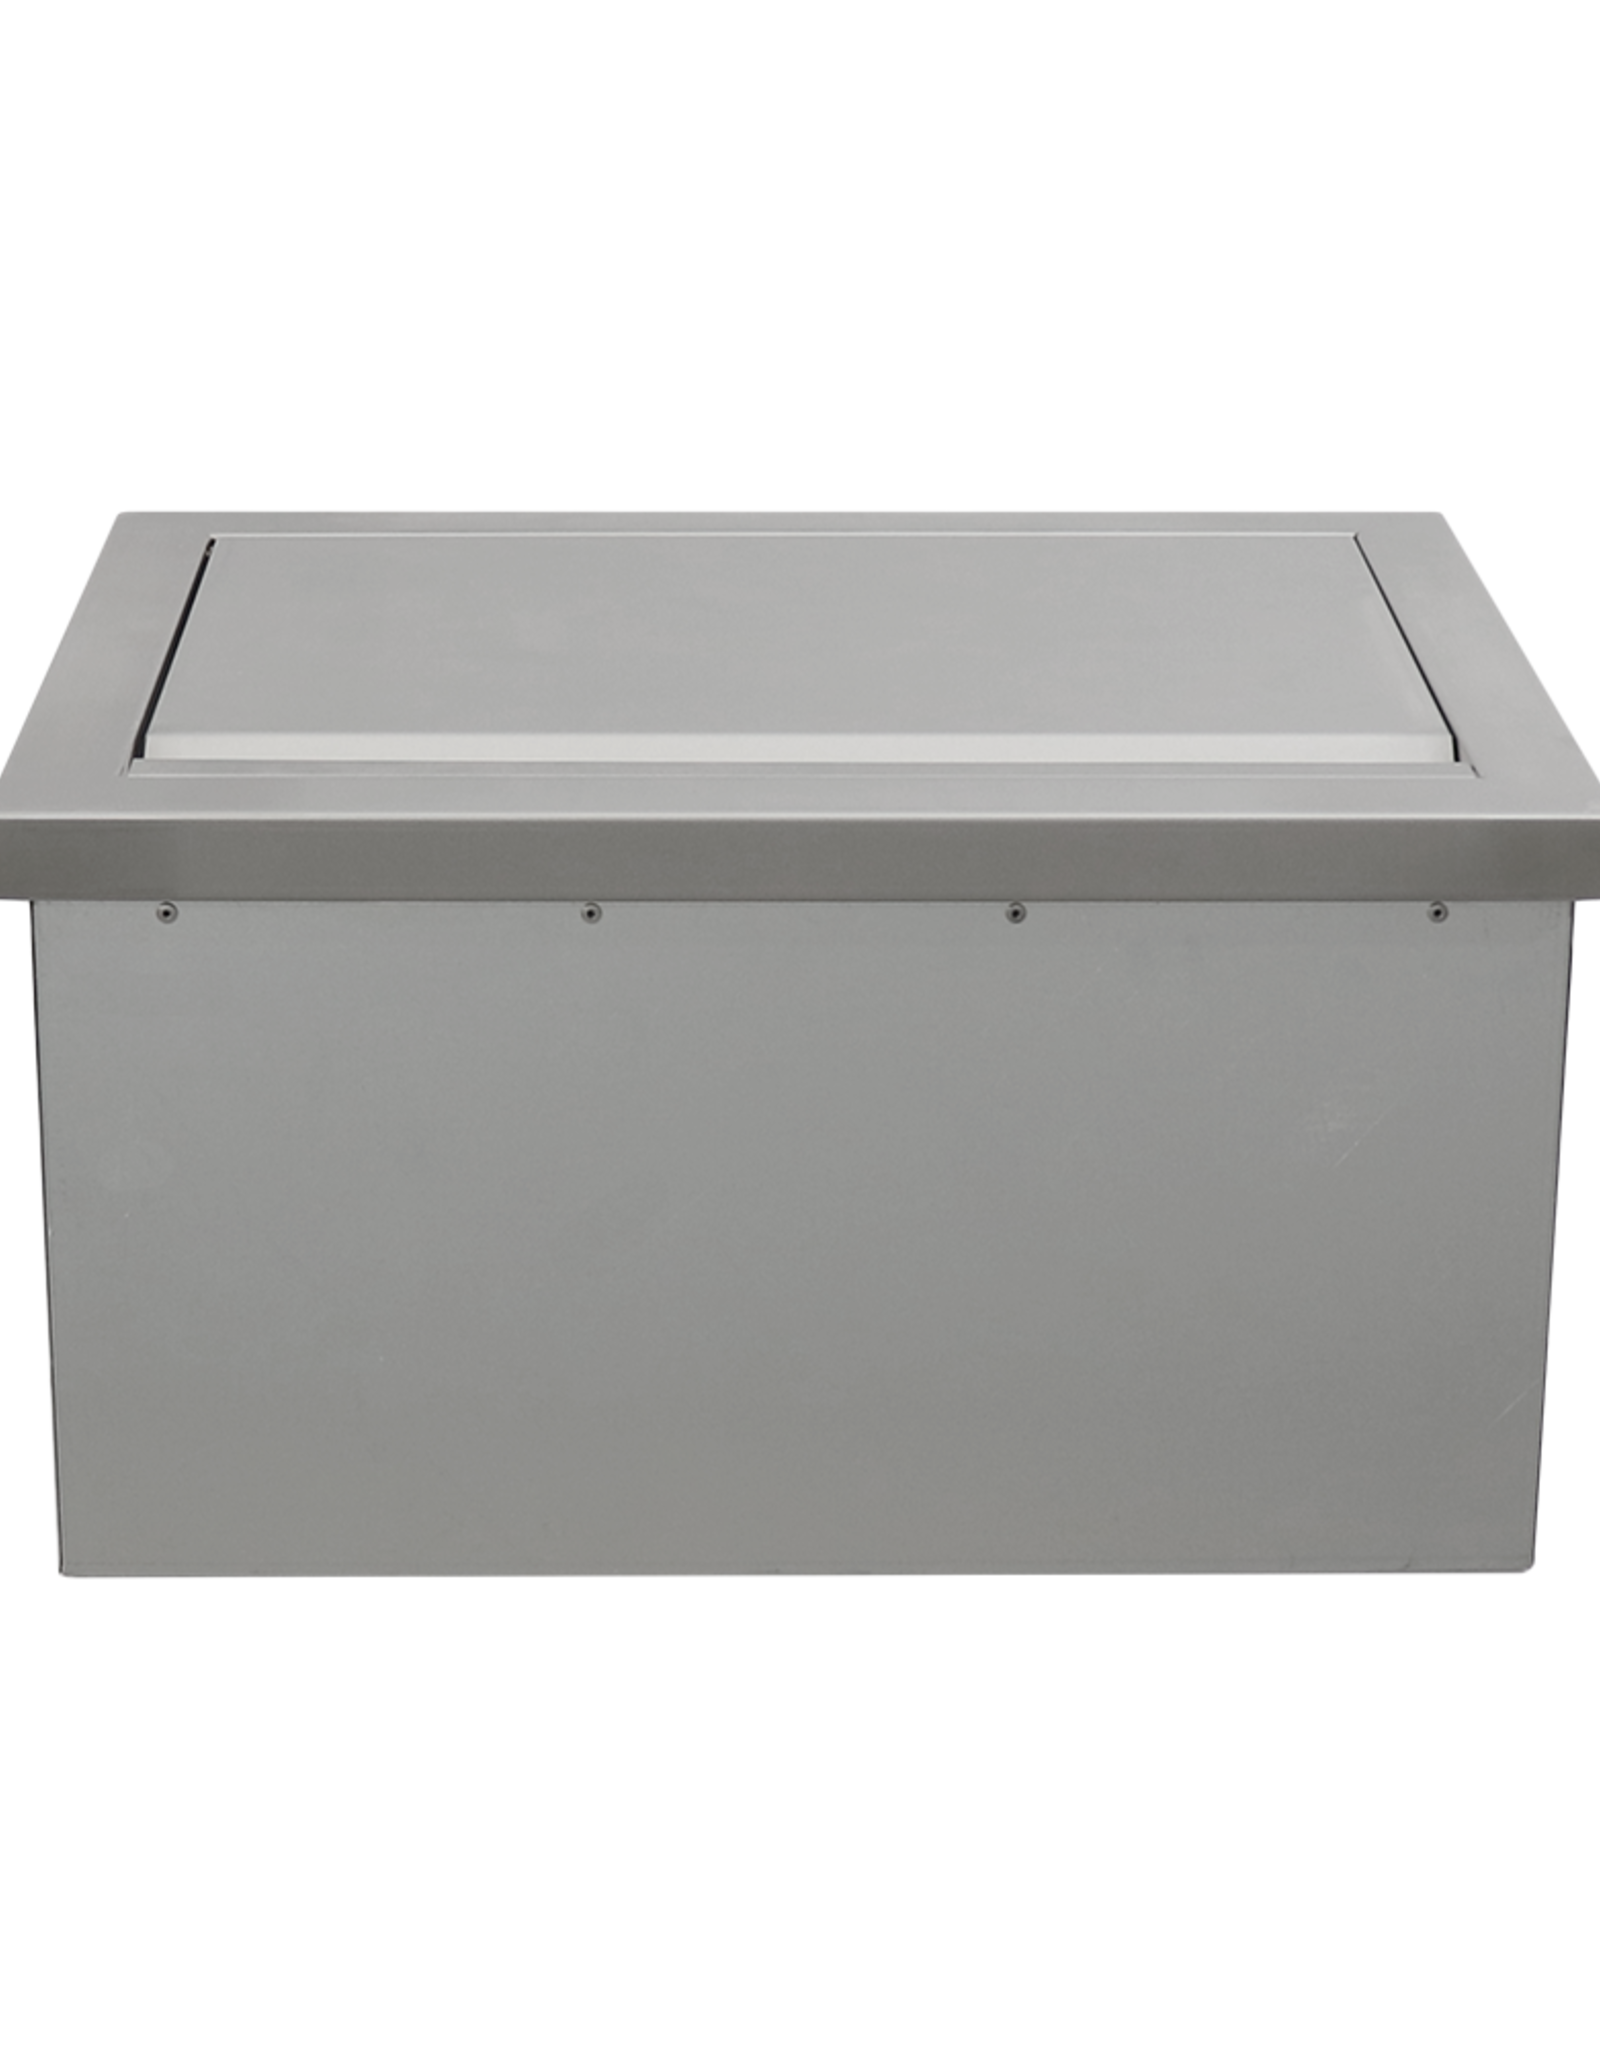 Renaissance Cooking Systems Renaissance Cooking Systems The Valiant Series Drop-In Cooler - VIC2